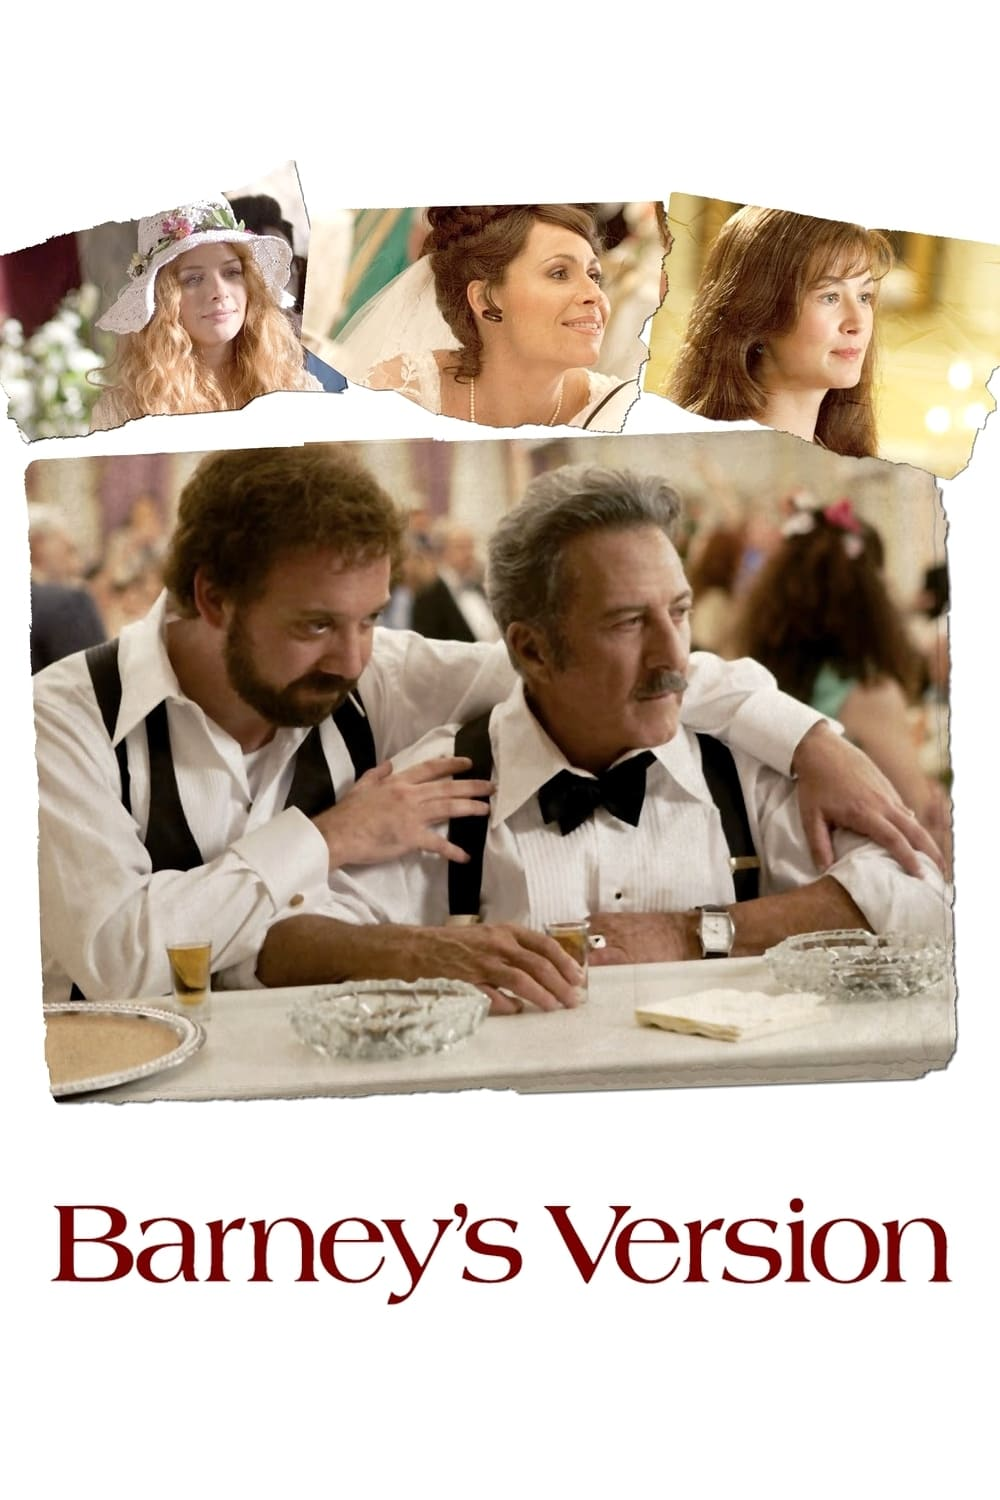 download or watch Barney's Version full movie online free Openload